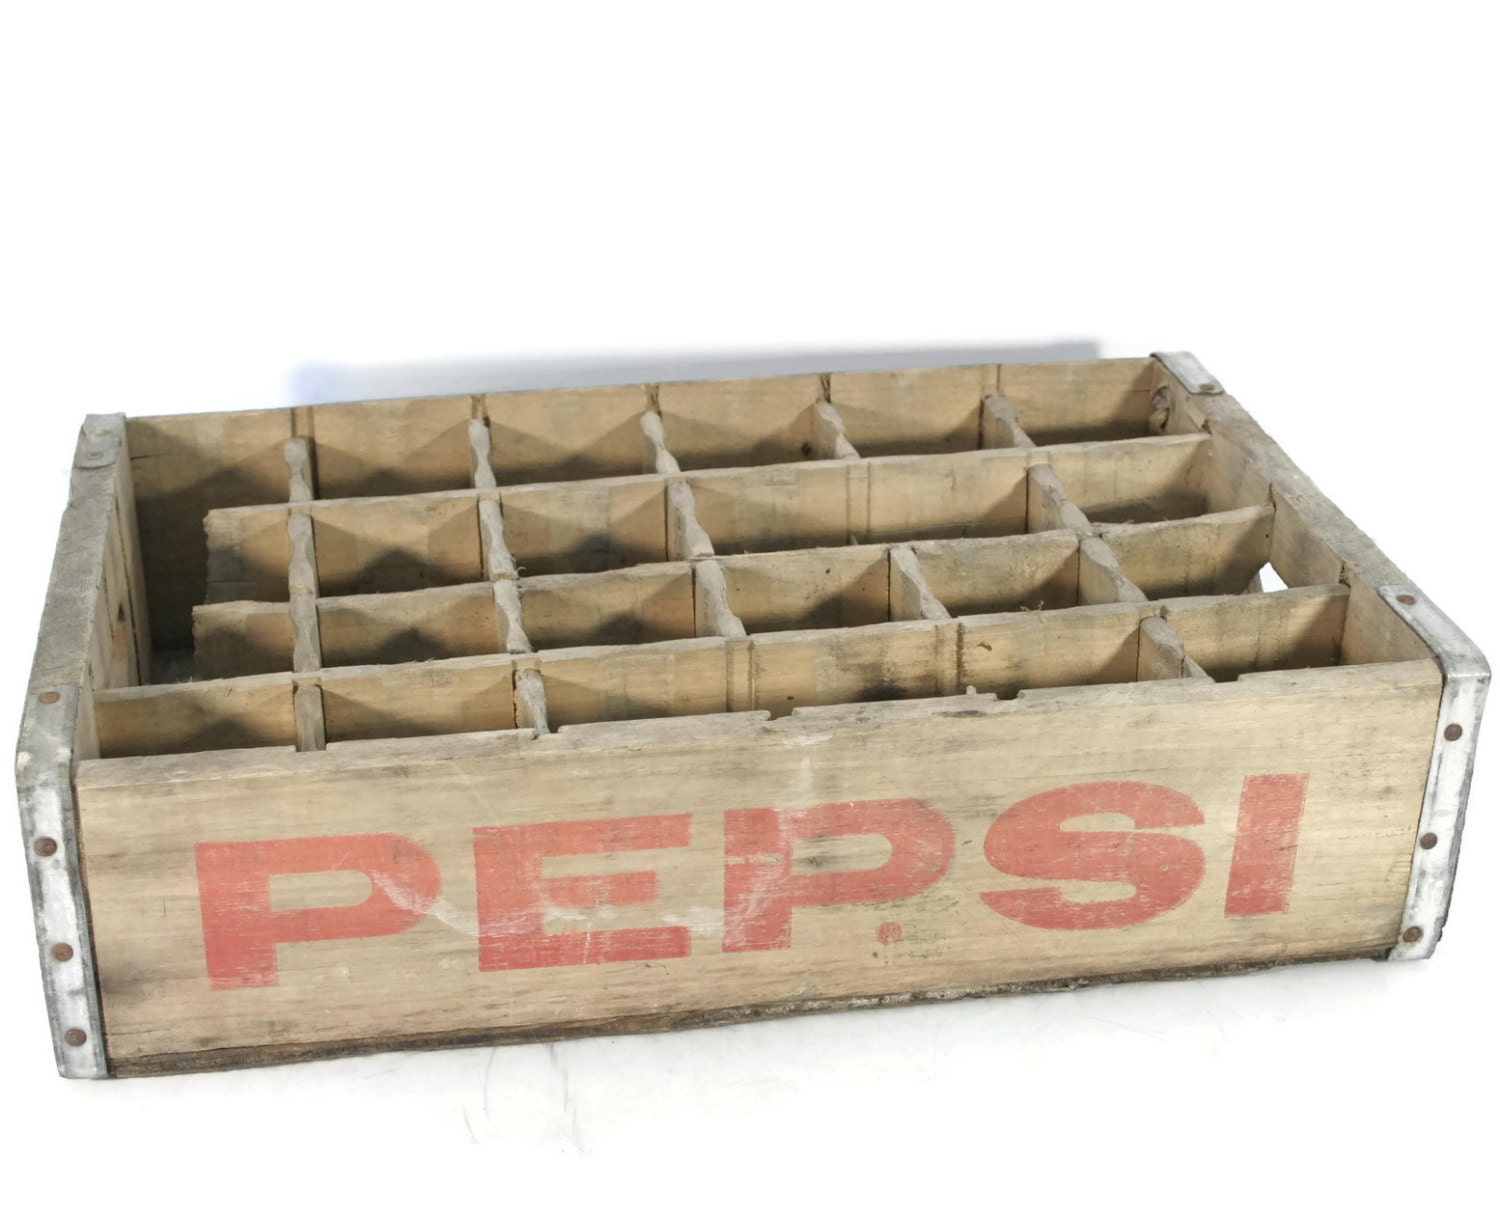 Wooden crate pepsi cola crate pepsi bottle crate for Timber crates